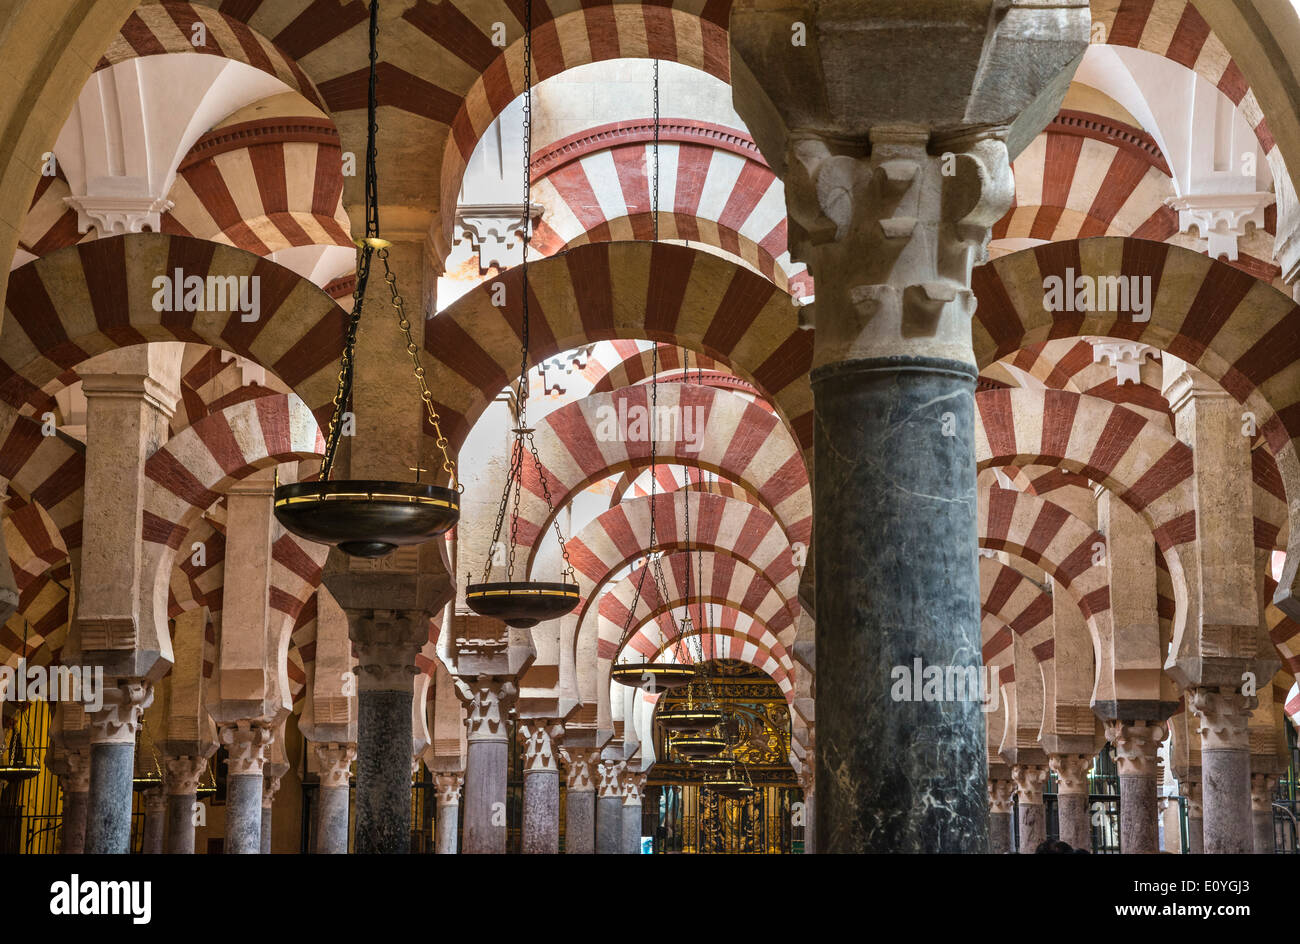 Great Mosque In Cordoba High Resolution Stock Photography And Images Alamy